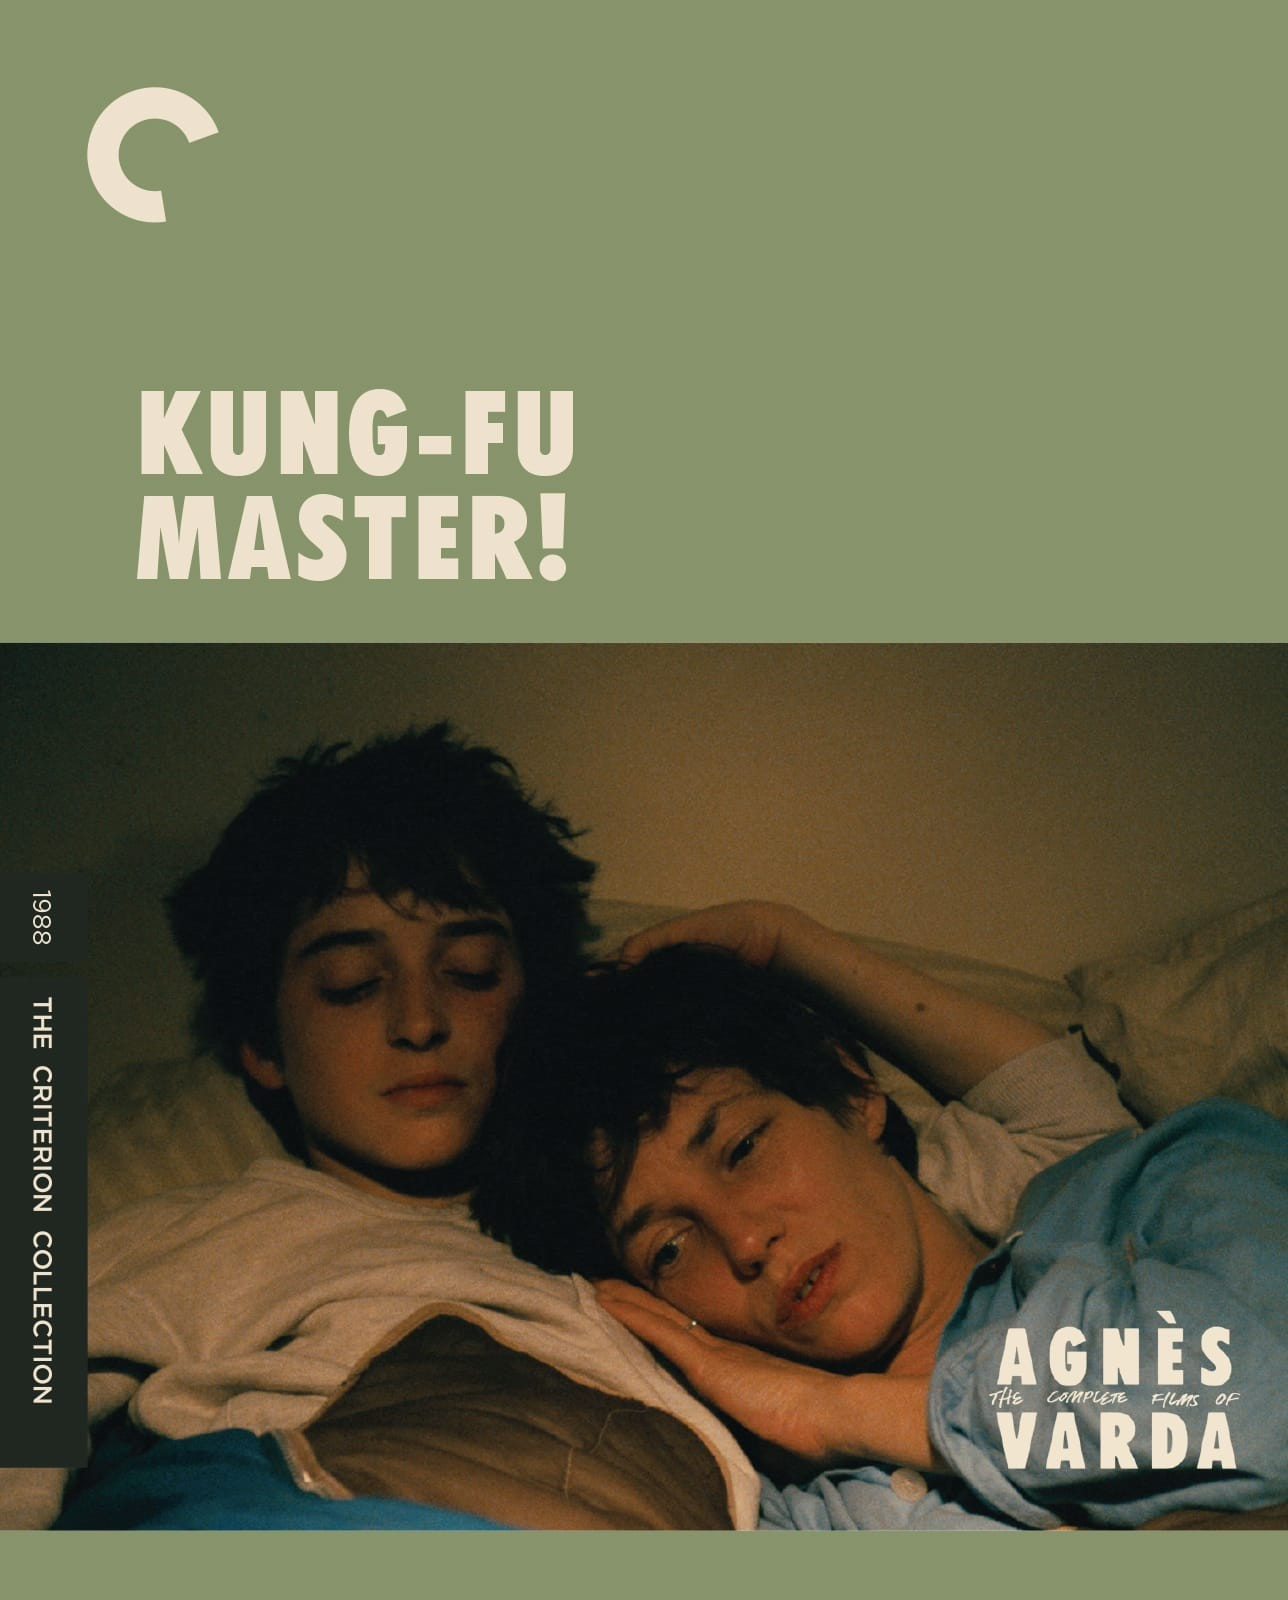 Kung-Fu Master! (1988) | The Criterion Collection